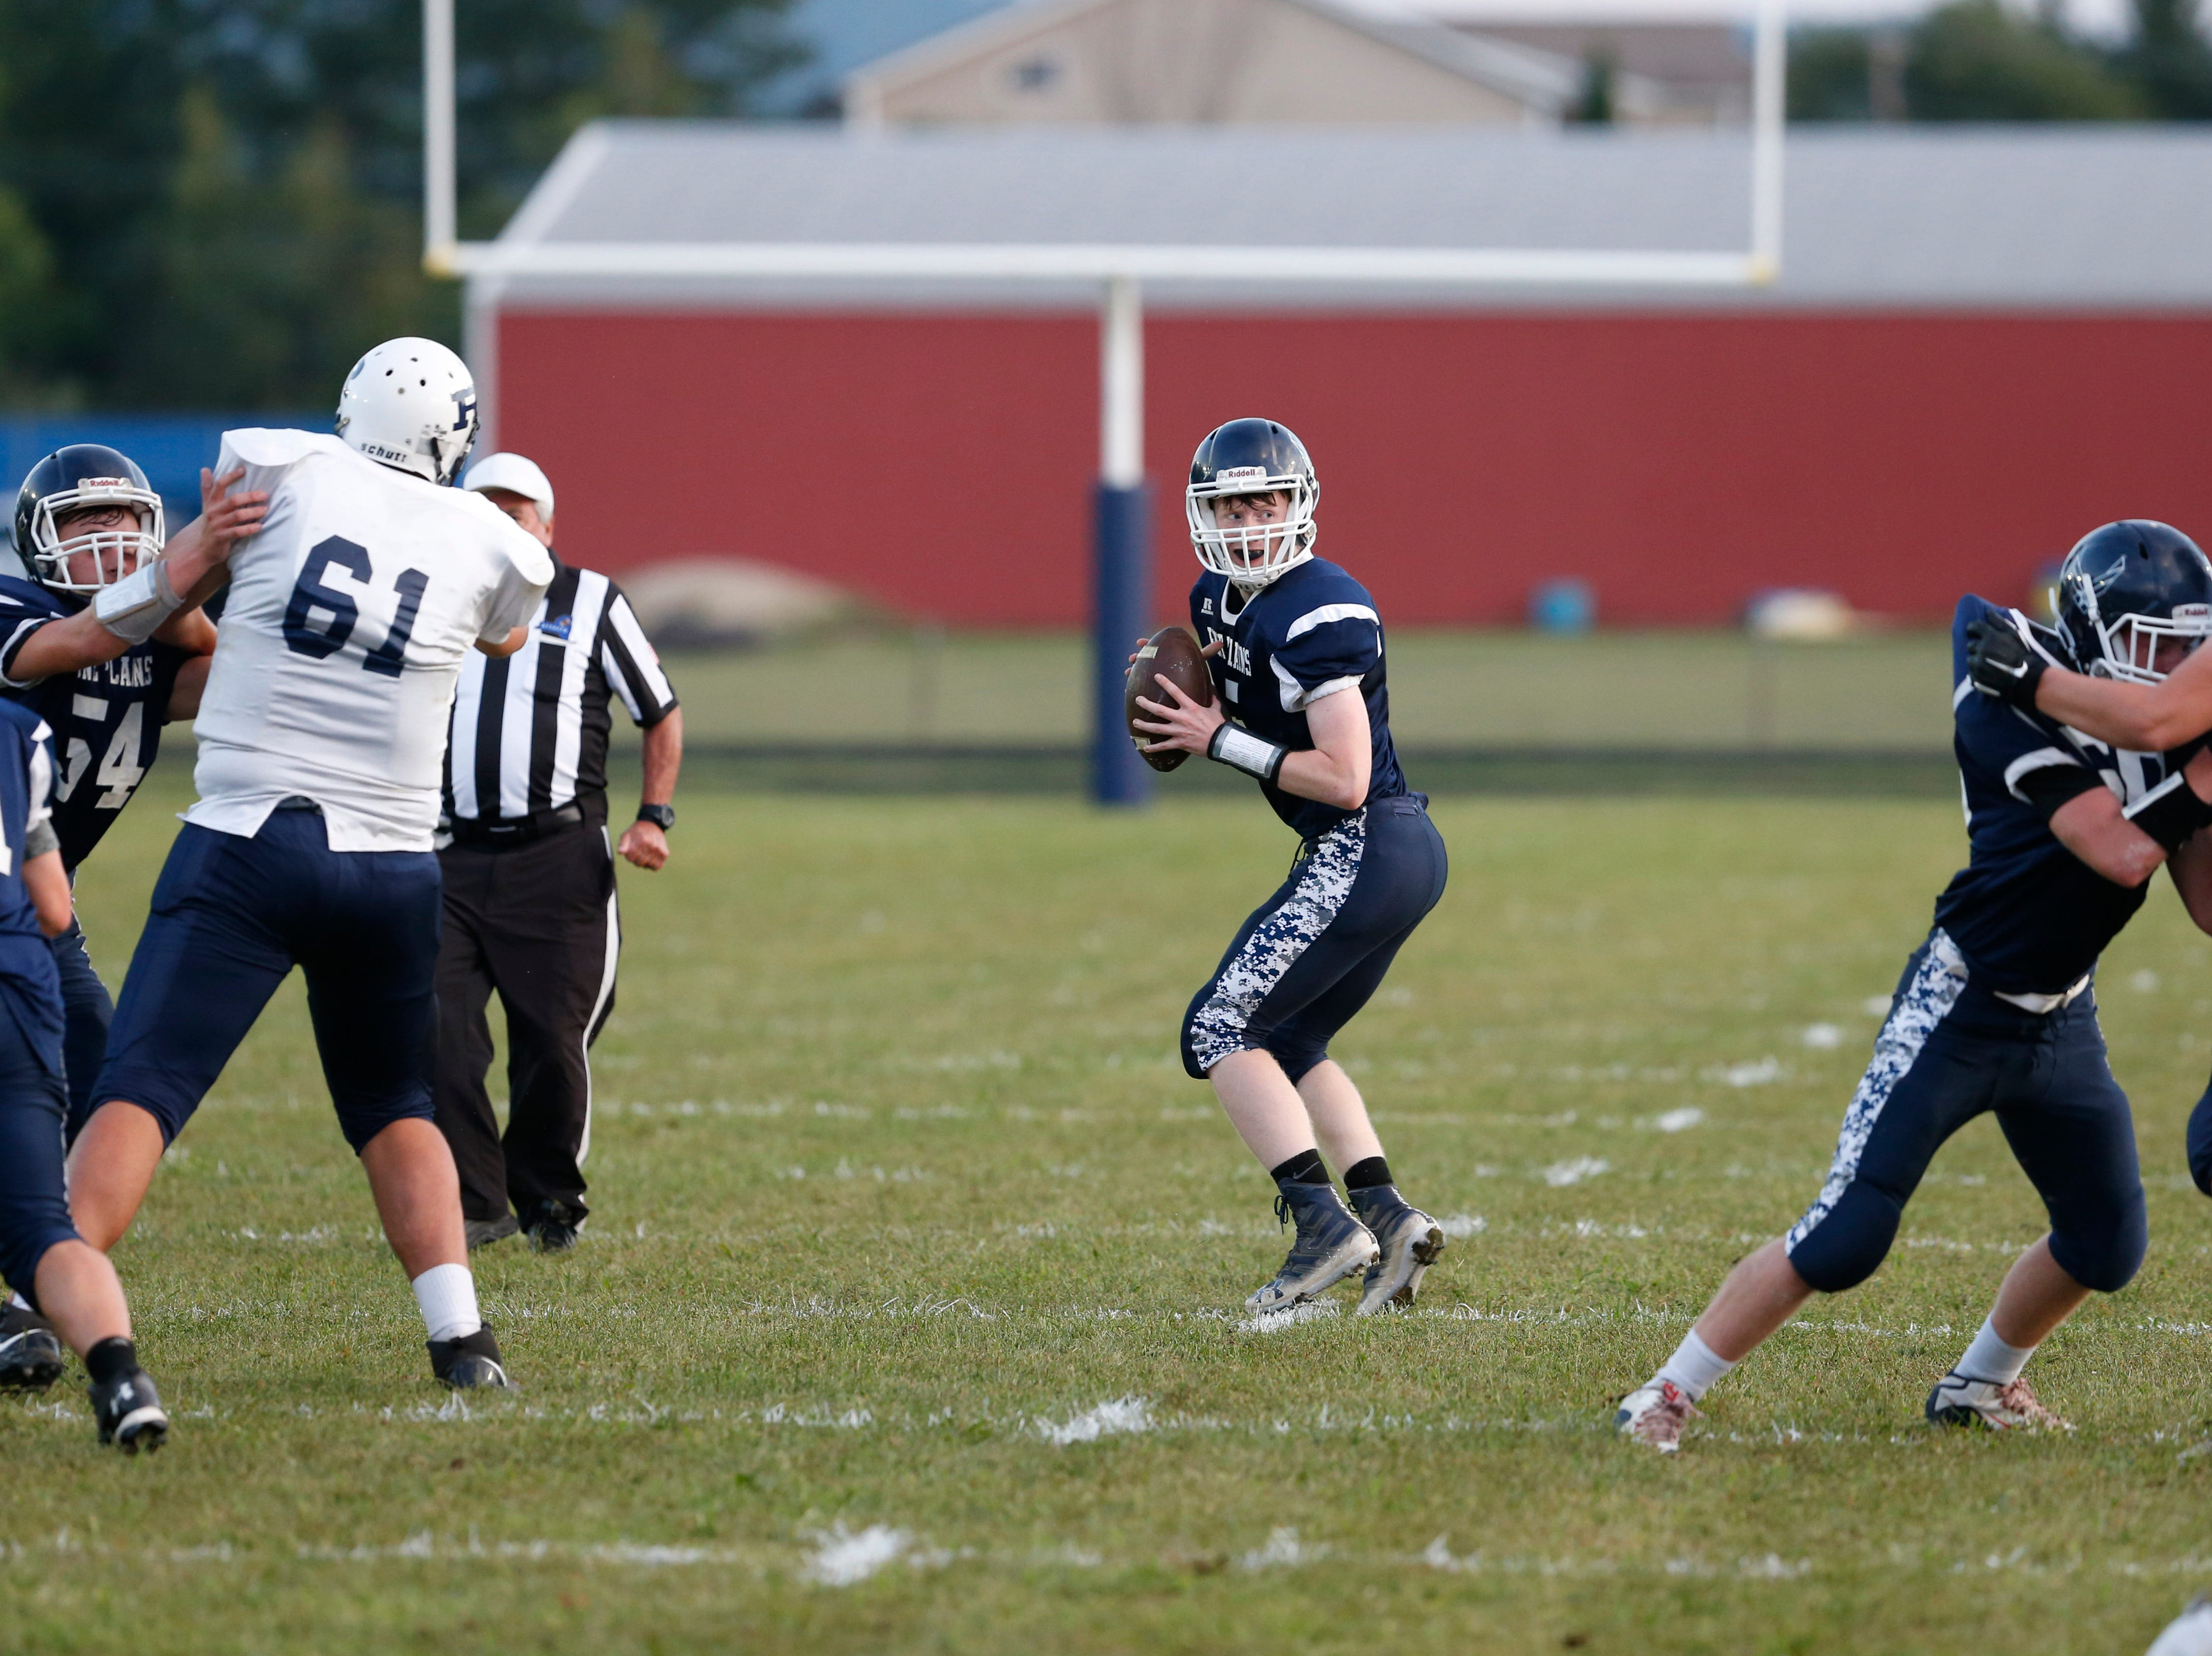 Pine Plains' Andrew Holsopple searches for an open receiver during Friday's home gam versus Roscoe on September 7, 2018.